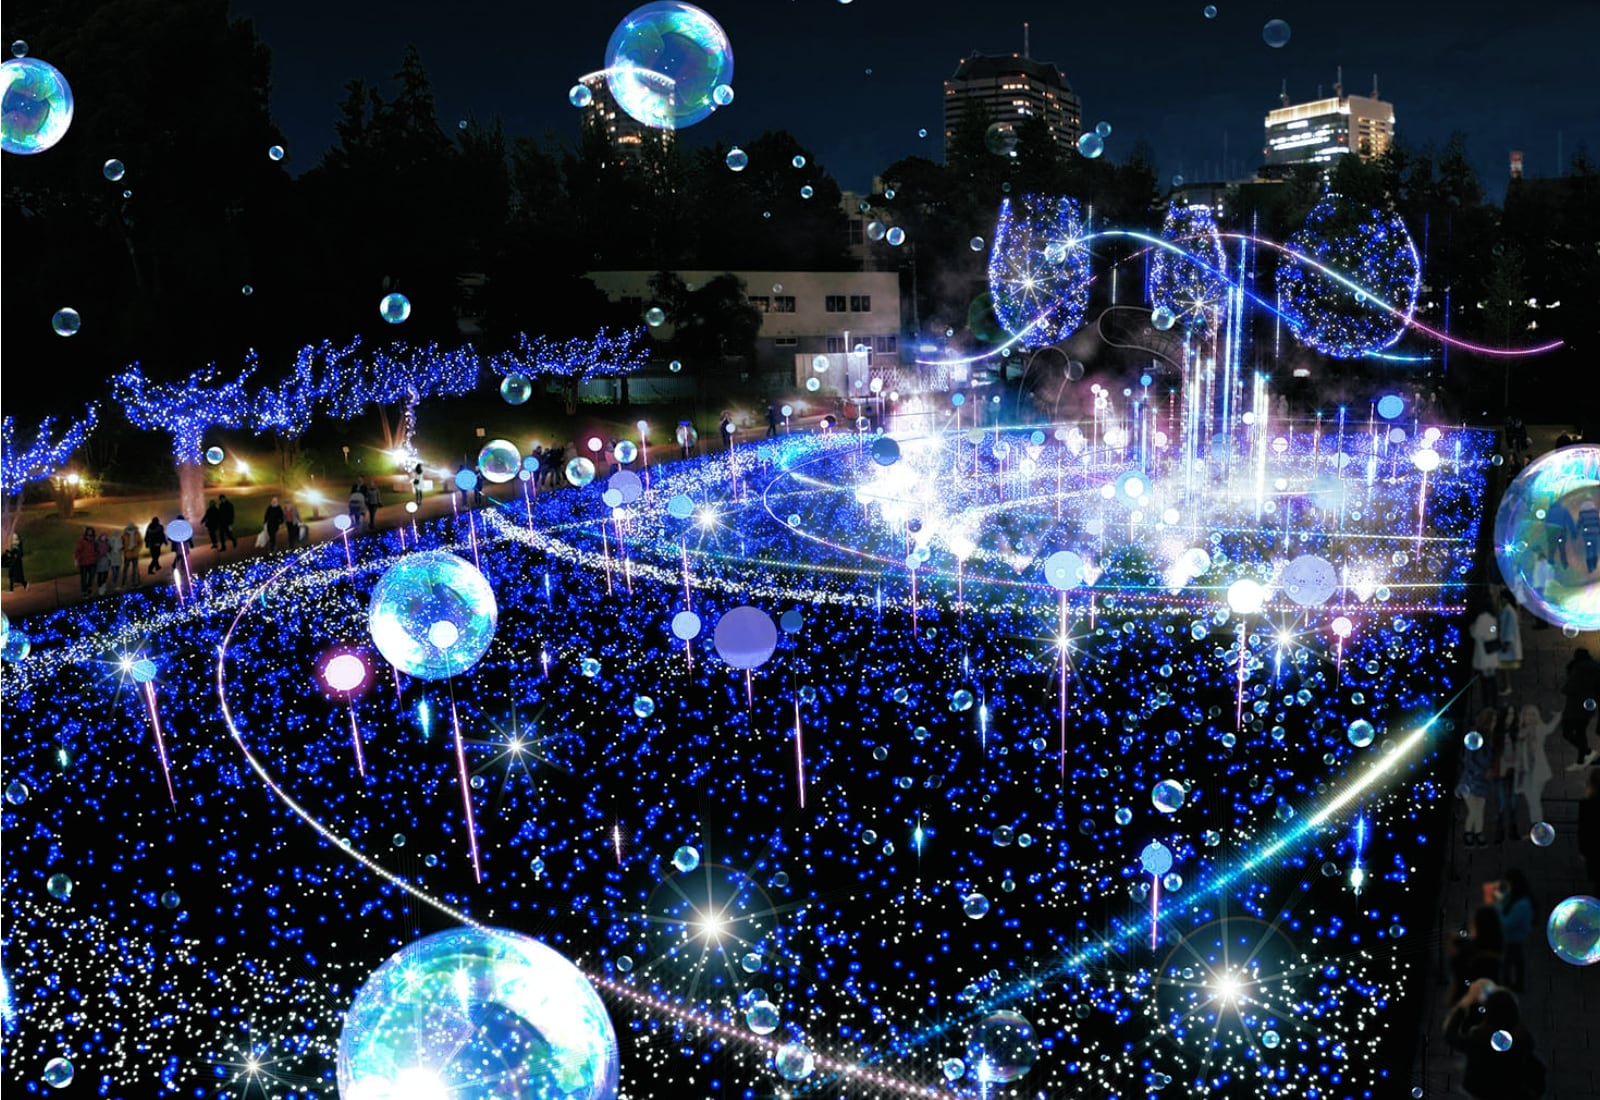 Best Tower Fan 2020.Tokyo S Top 15 Winter Illuminations For 2019 2020 Savvy Tokyo